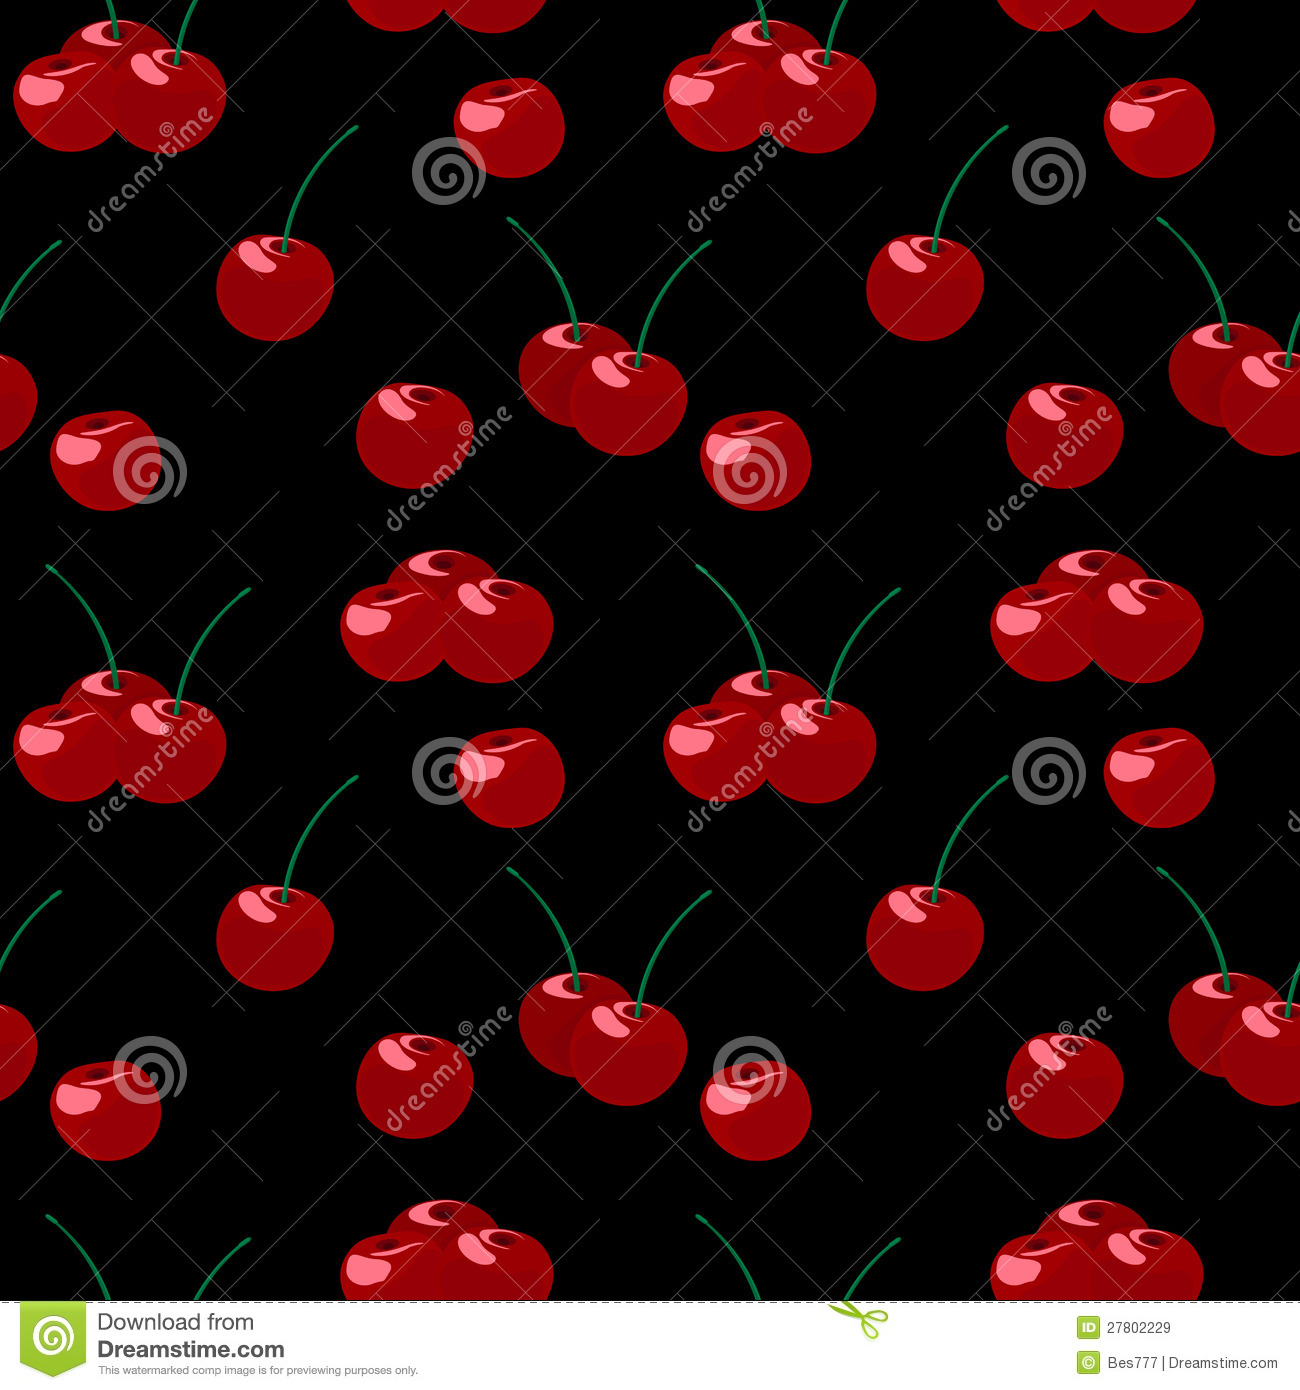 Cherry Pattern Royalty Free Stock Images - Image: 27802229